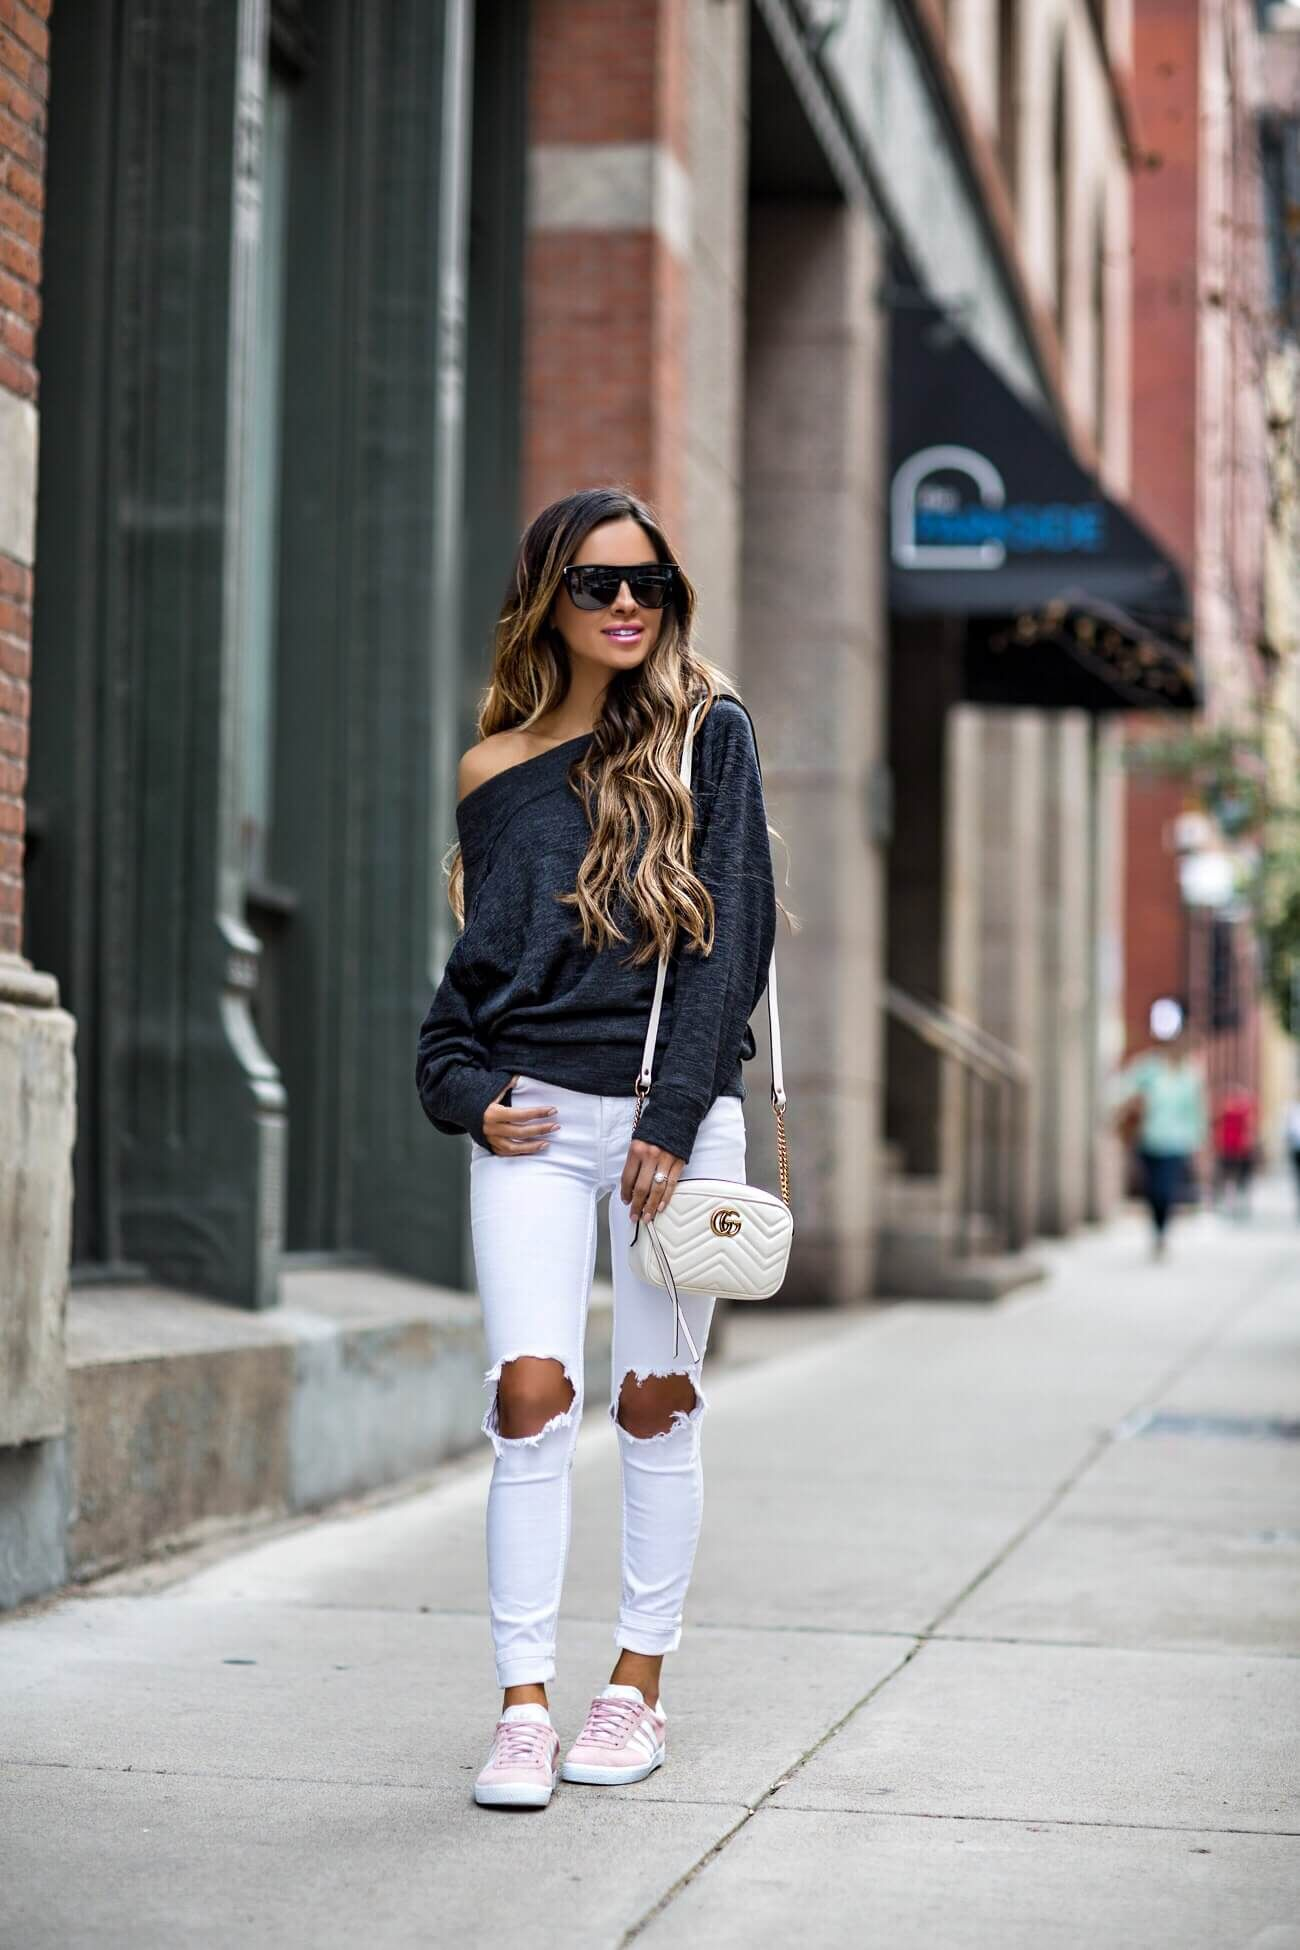 c849eaee0ba8 fashion blogger mia mia mine wearing a gray off-the-shoulder sweatshirt by  free people and pink adidas sneakers from macy s